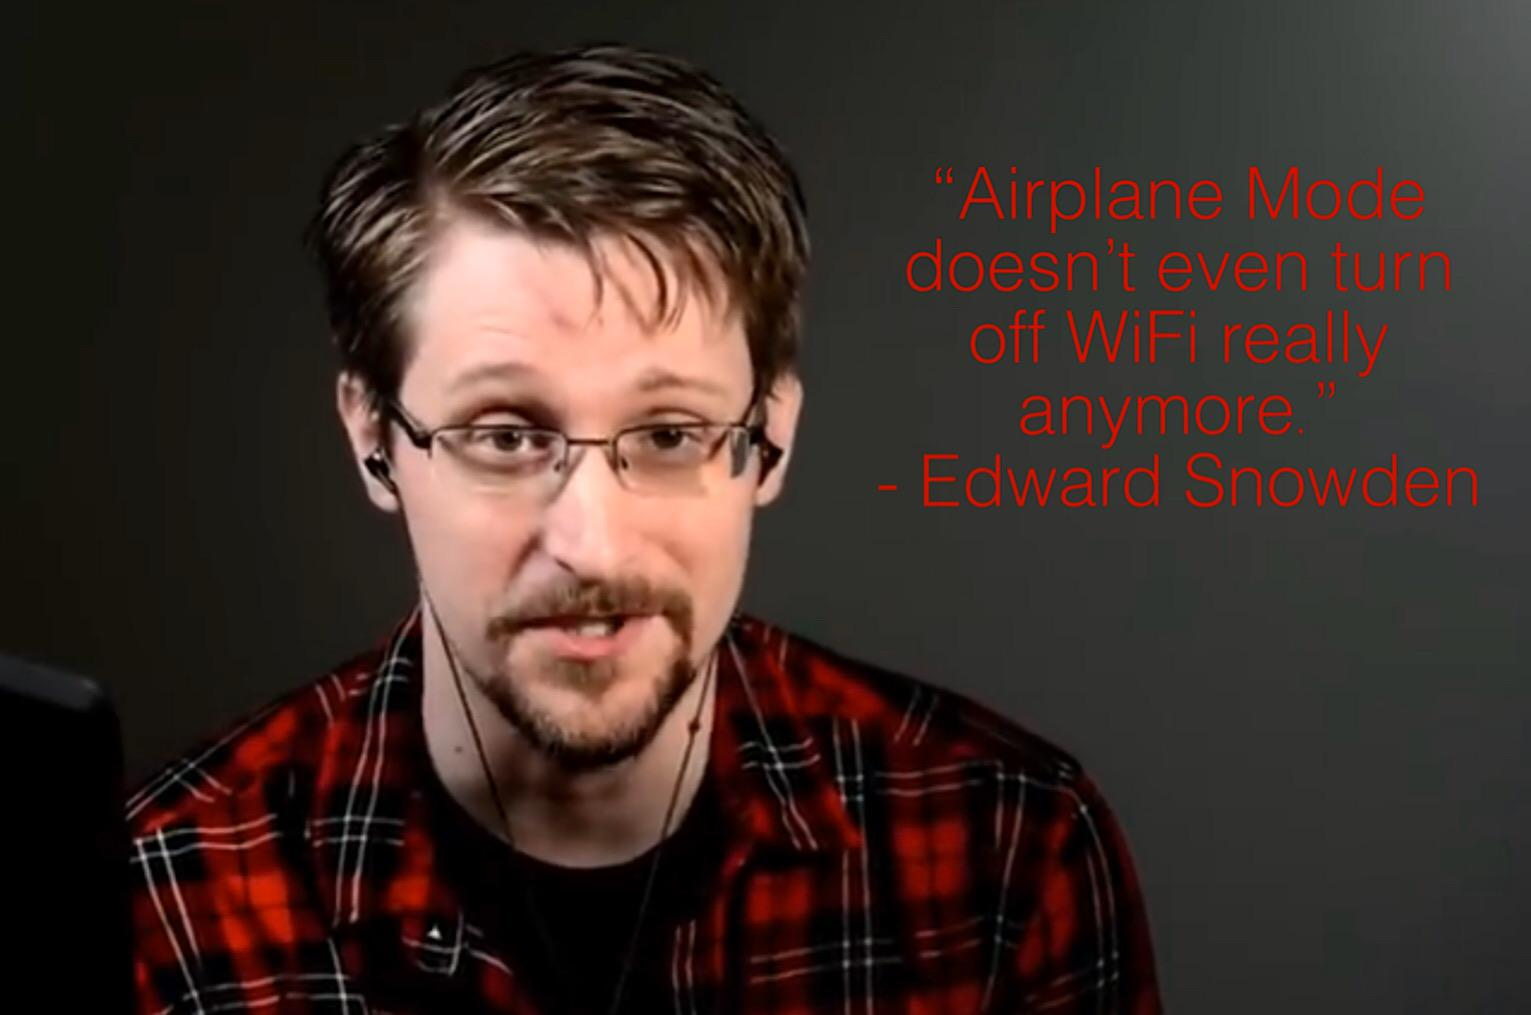 """Airplane Mode doesn't even turn off WiFi really anymore."" – Edward Snowden [1531 x 1015]"